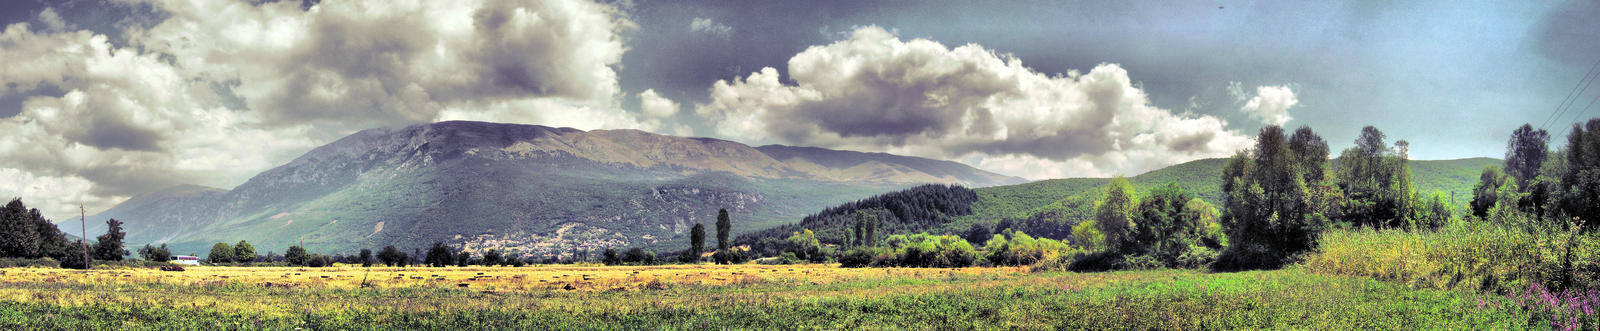 meadow and a mountain by Damir-Olejar